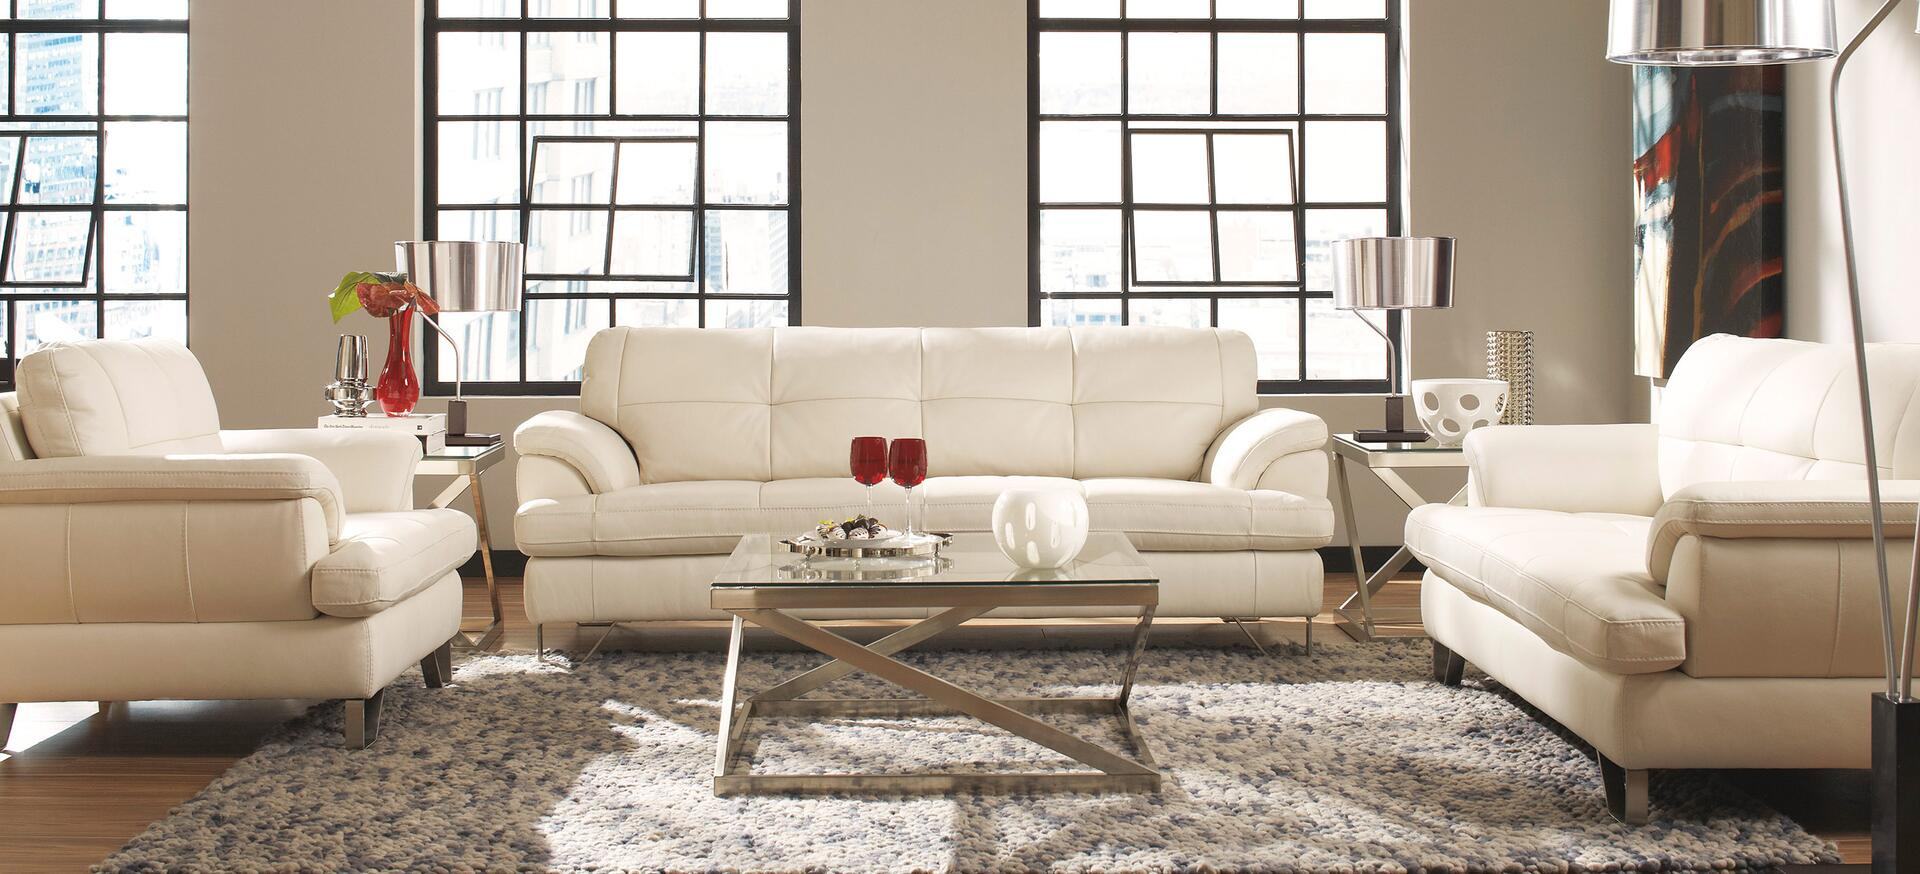 Signature design by ashley gunter sofa shown with matching loveseat and chair